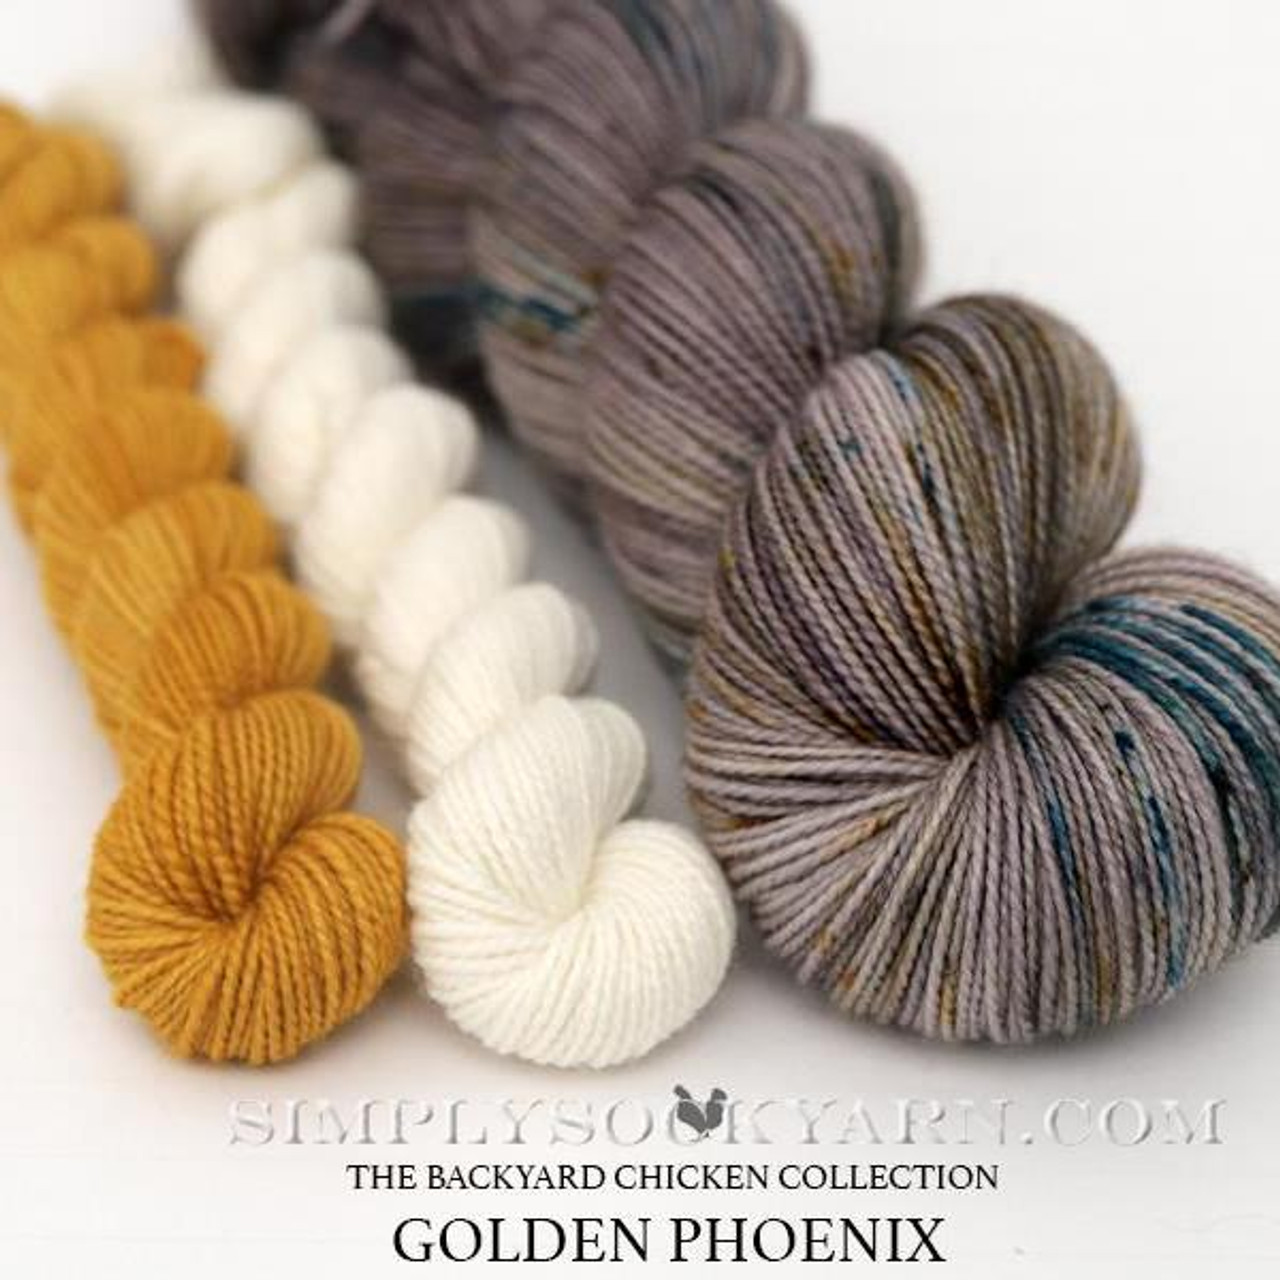 HLoco BYCC Gold Phoenix Rooster -